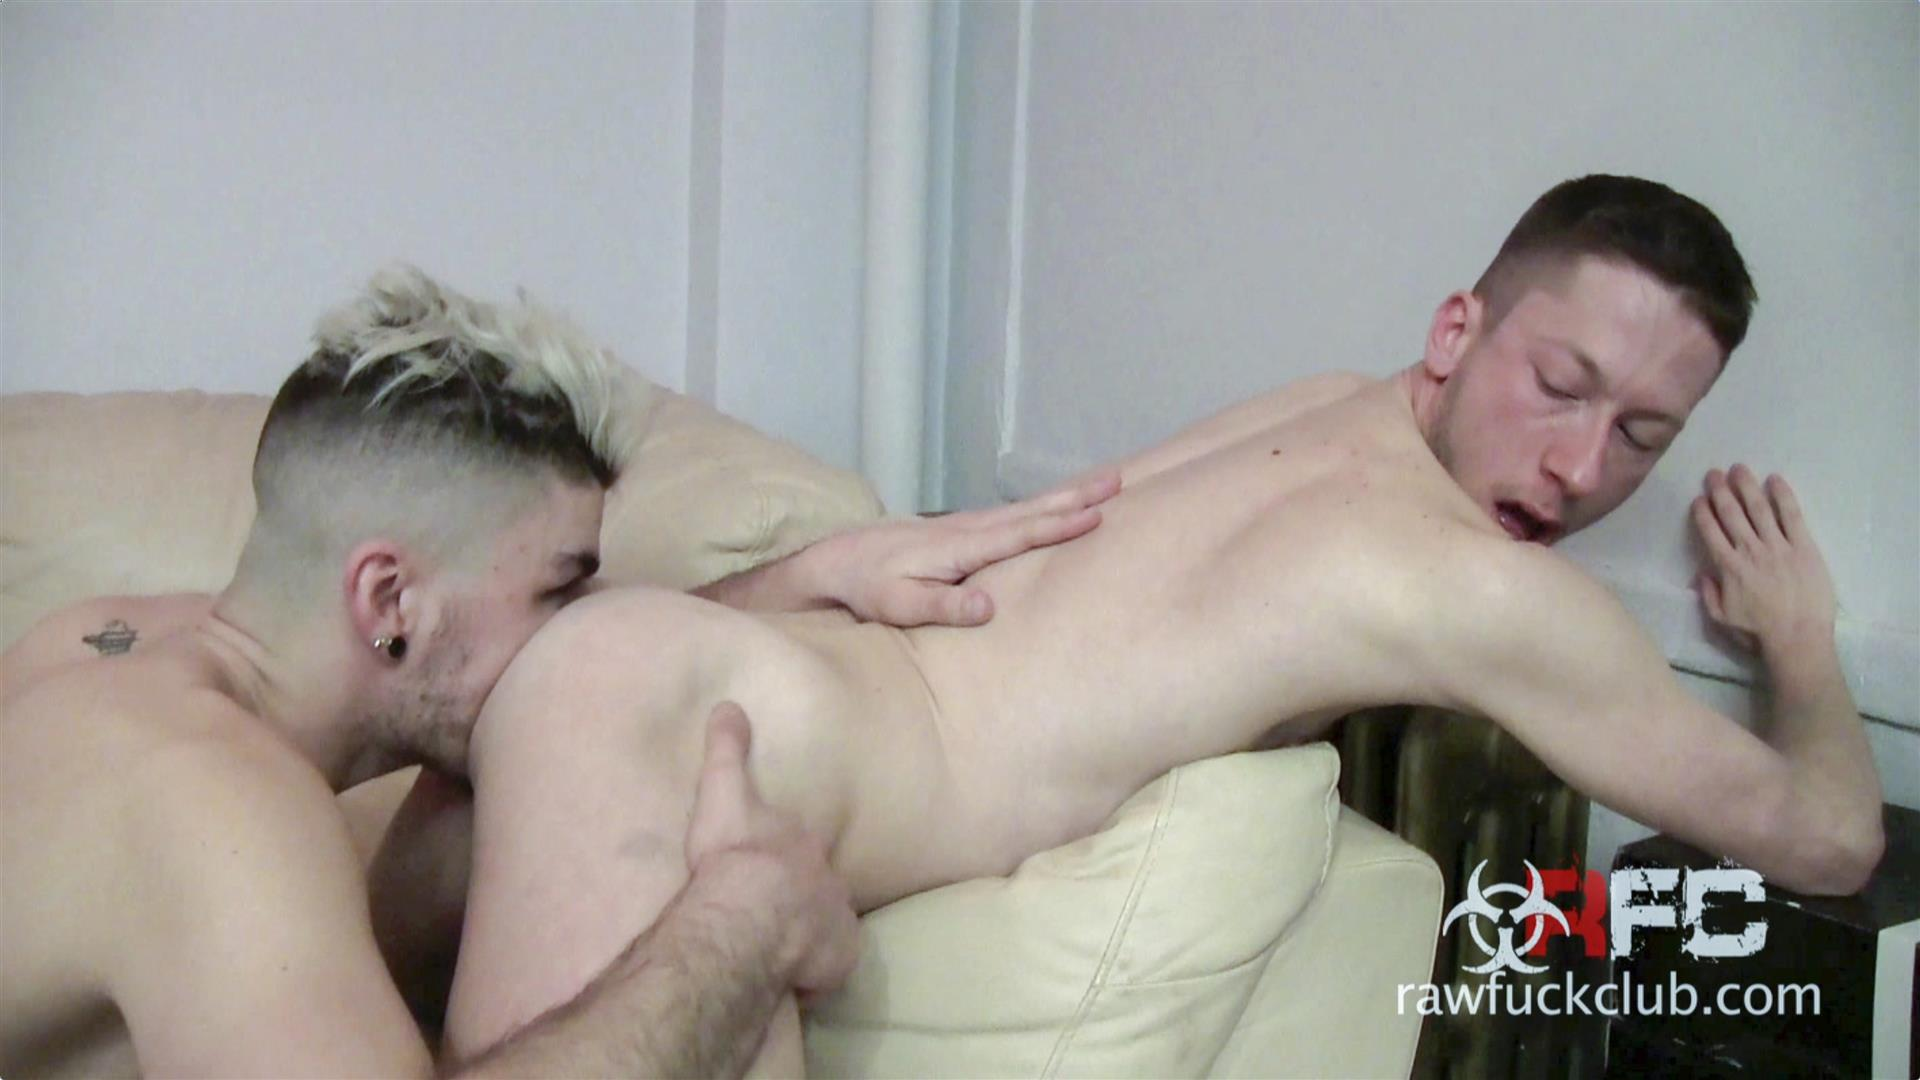 Raw-Fuck-Club-Luke-Harding-and-Vincent-Rush-Big-Cock-Guys-Barebacking-Amateur-Gay-Porn-07 Male Stripper Luke Harding Barebacking A Stranger